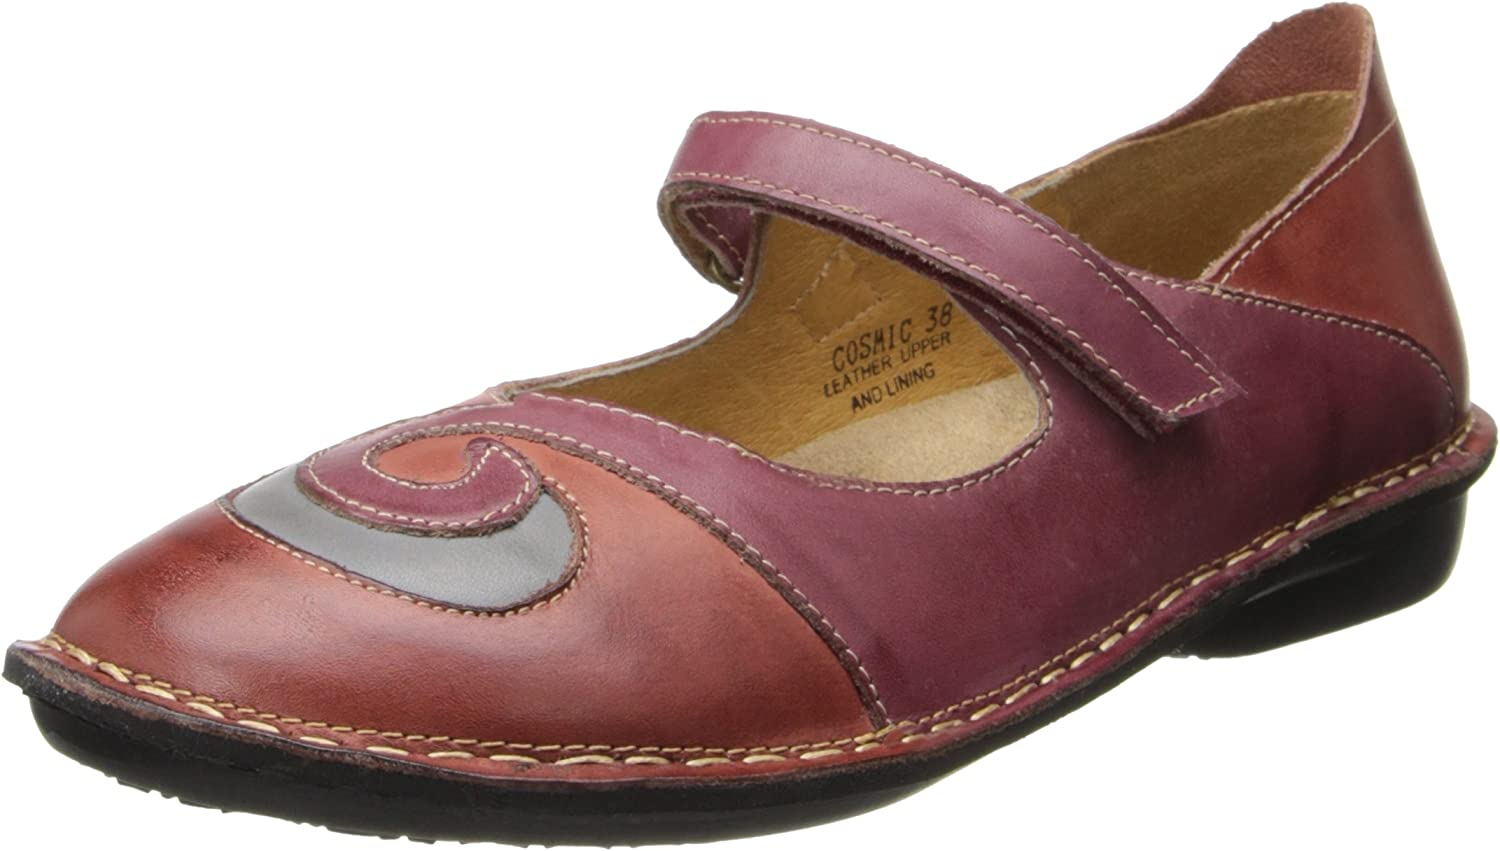 Spring Step Womens Cosmic Mary Jane Flat